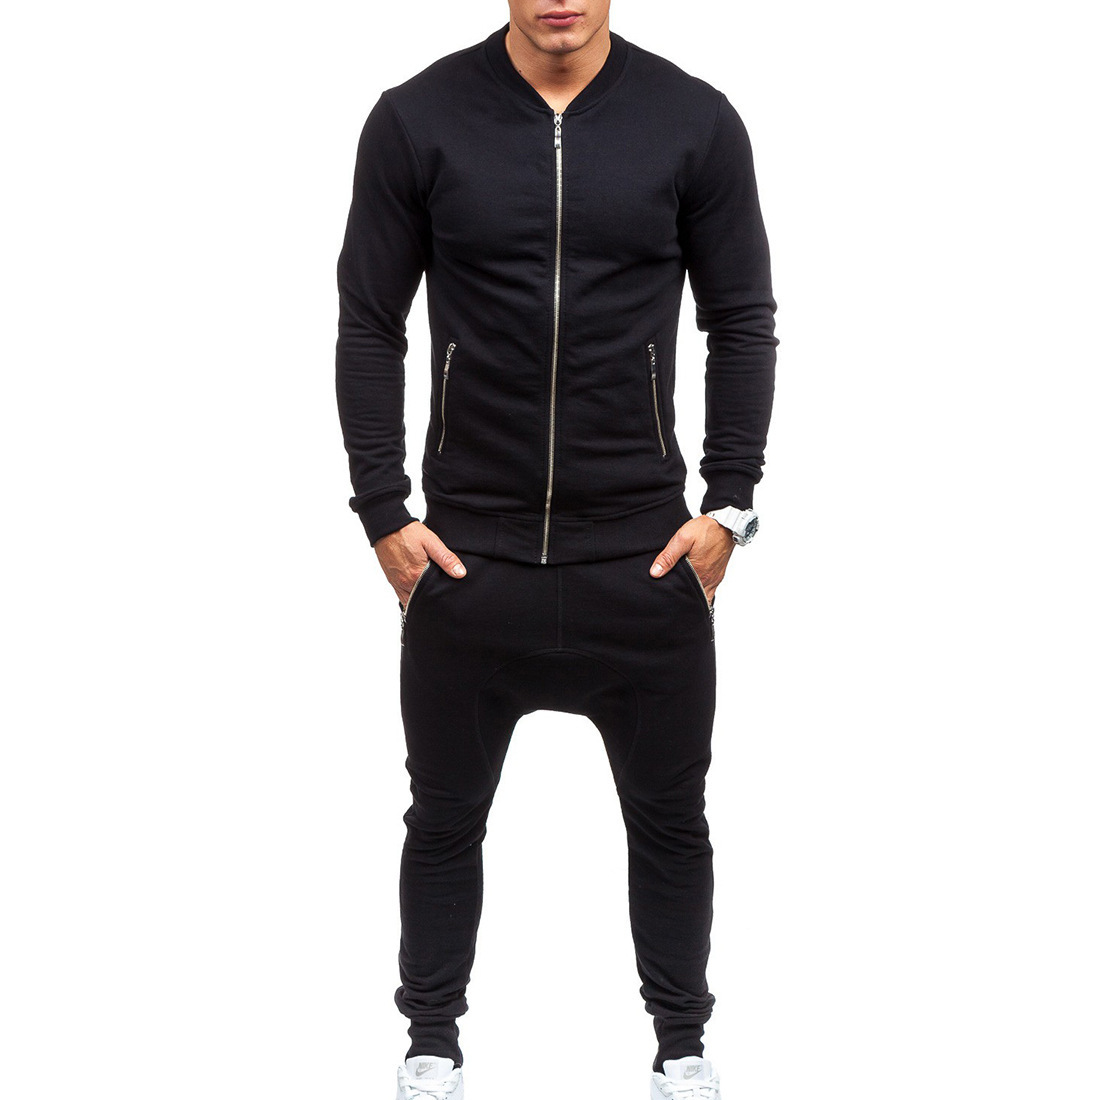 Supply Of Goods Men Casual Hoodie Suit Men's Outdoor Sports Clothing Ozhouzhan Large Size Baseball Uniform Set